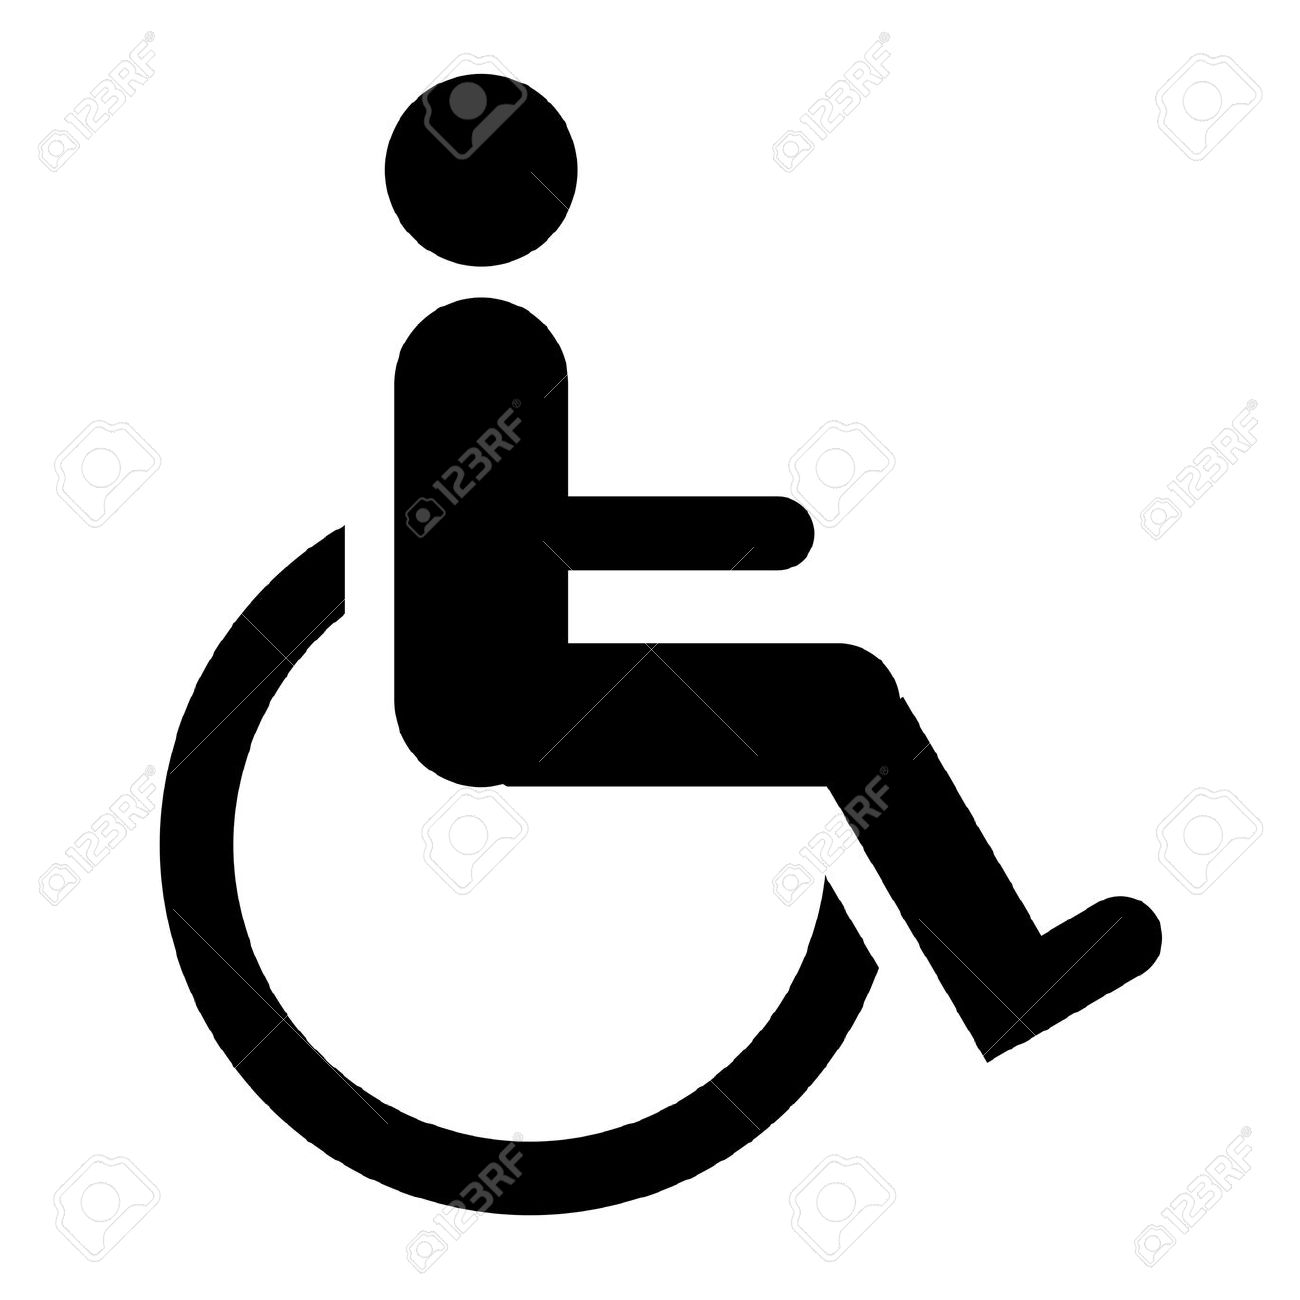 1031b6250fa732bb1adf_6419599-Silhouette-of-disabled-person-in-wheelchair-symbol-or-sign-isolated-on-white-background--Stock-Photo.jpg